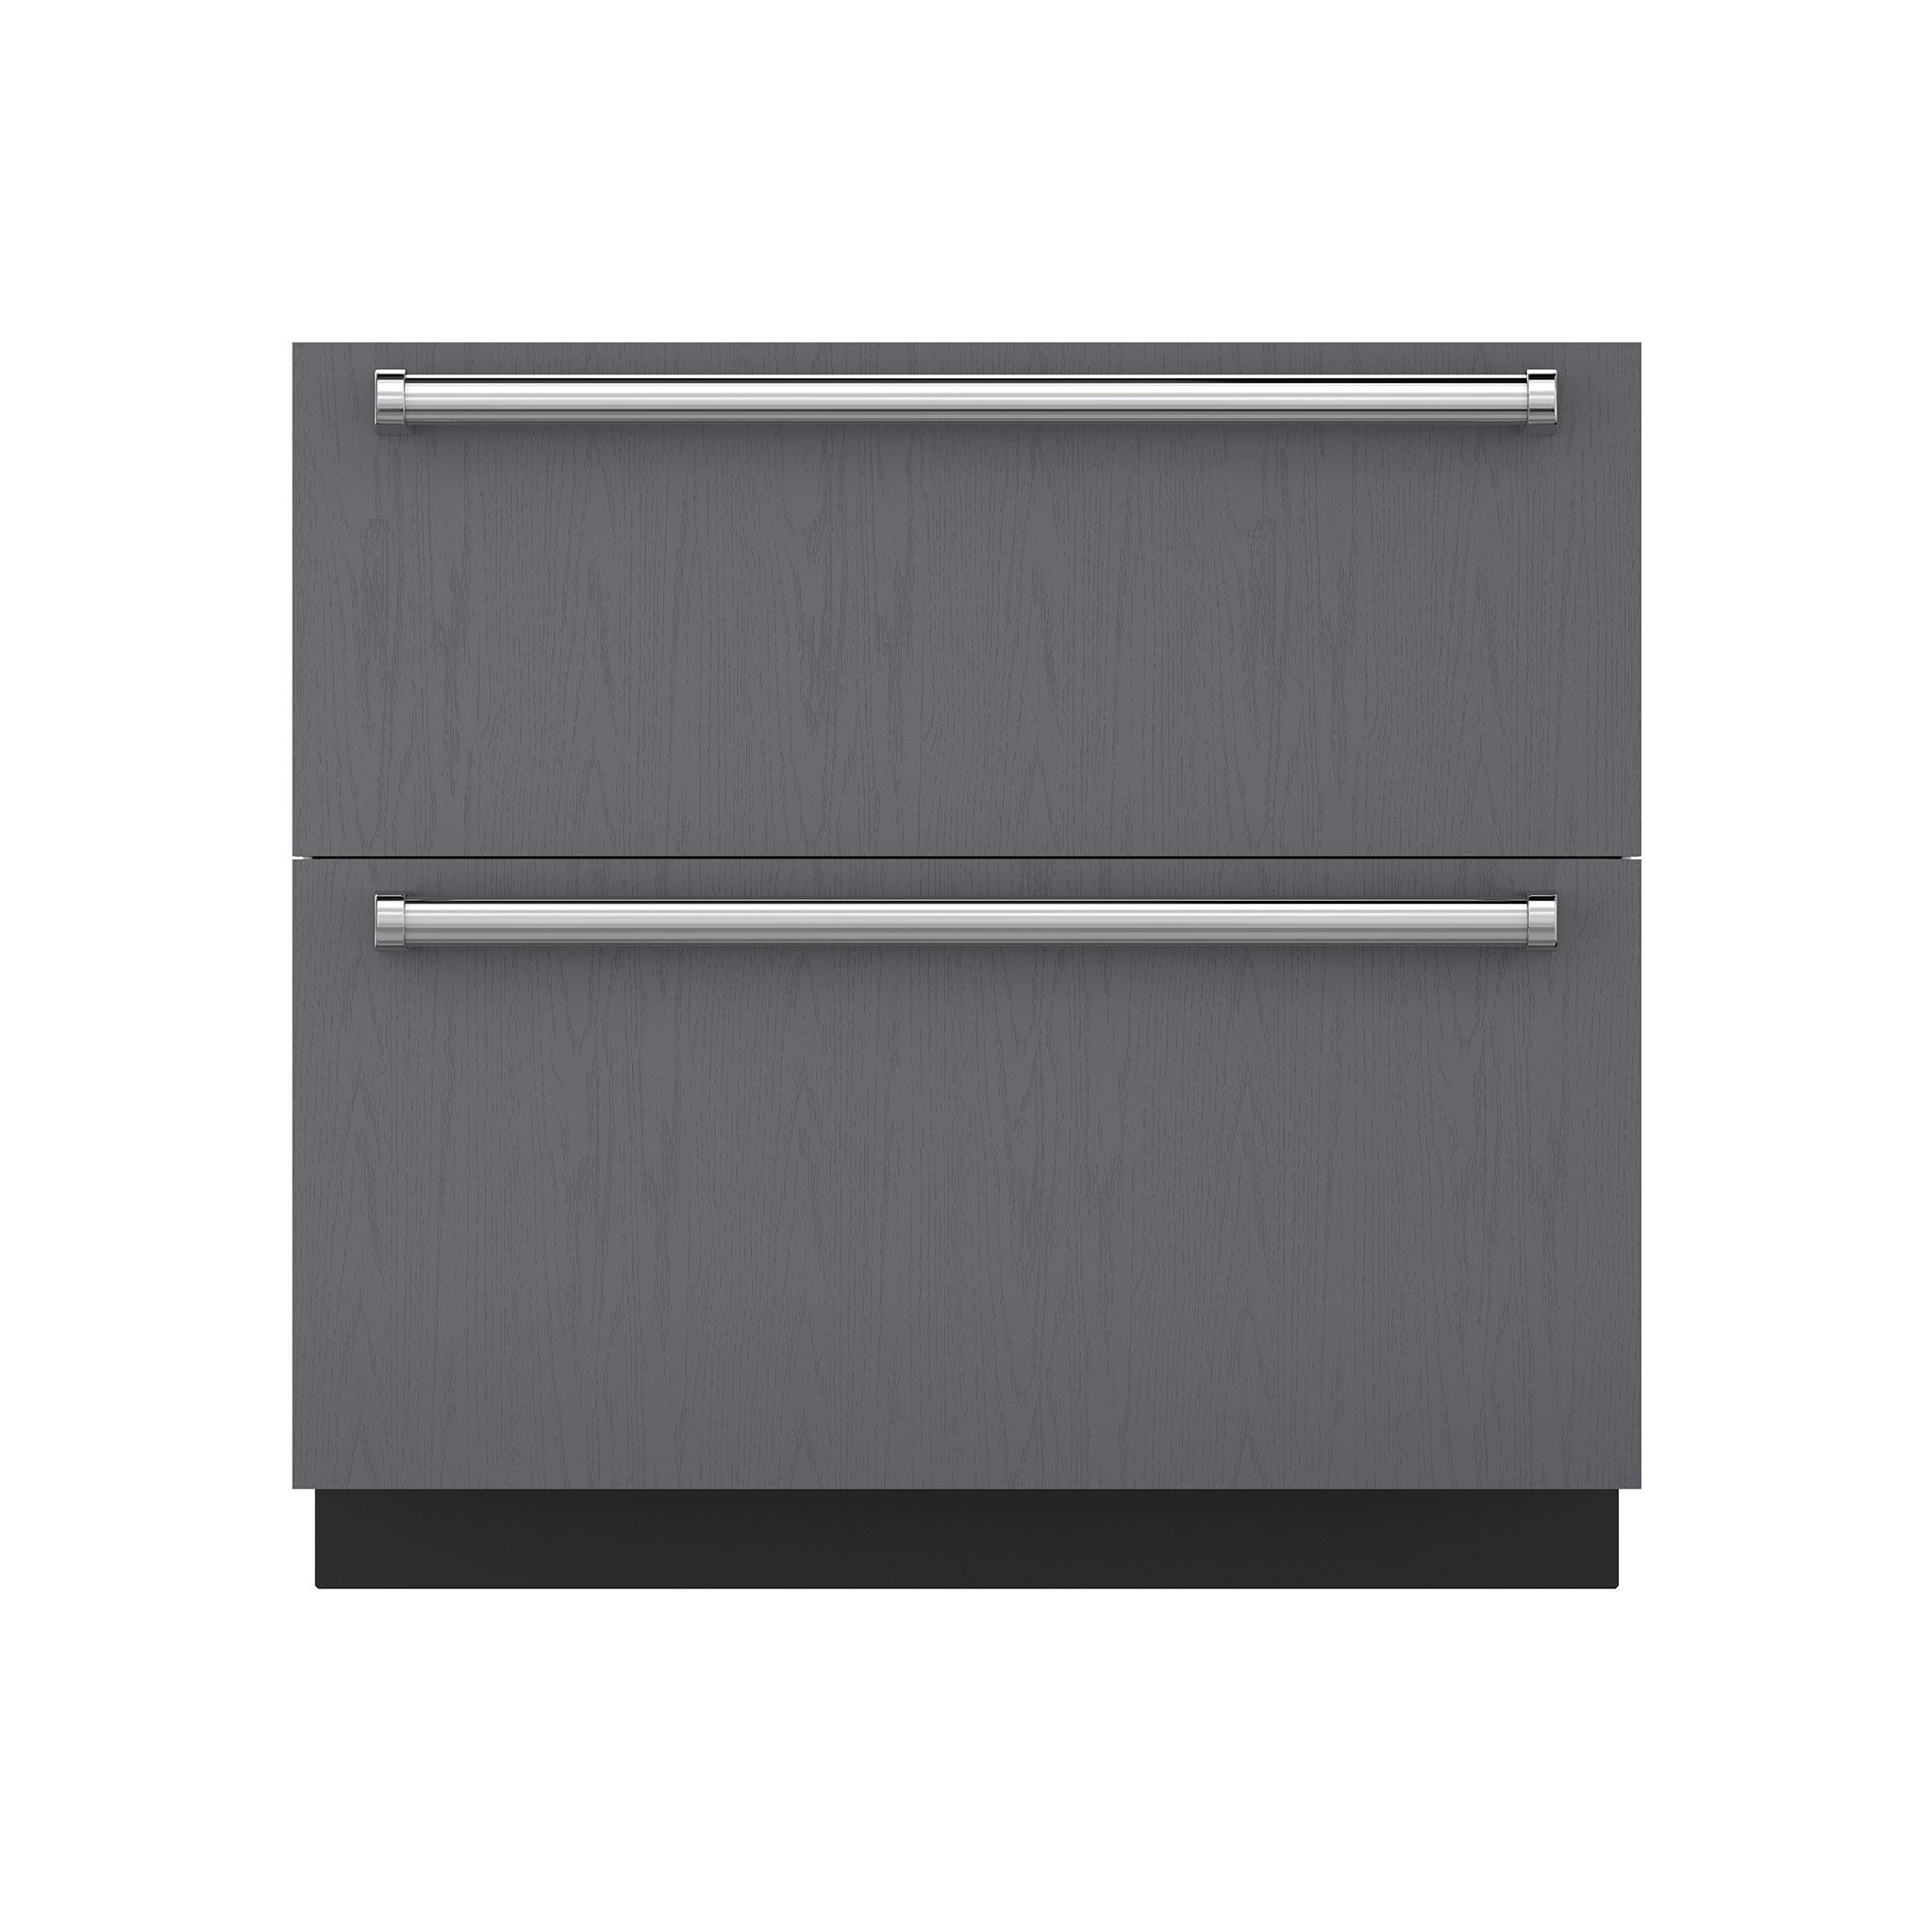 drawer productsincategoryxml refrigerator drawers id integrated product